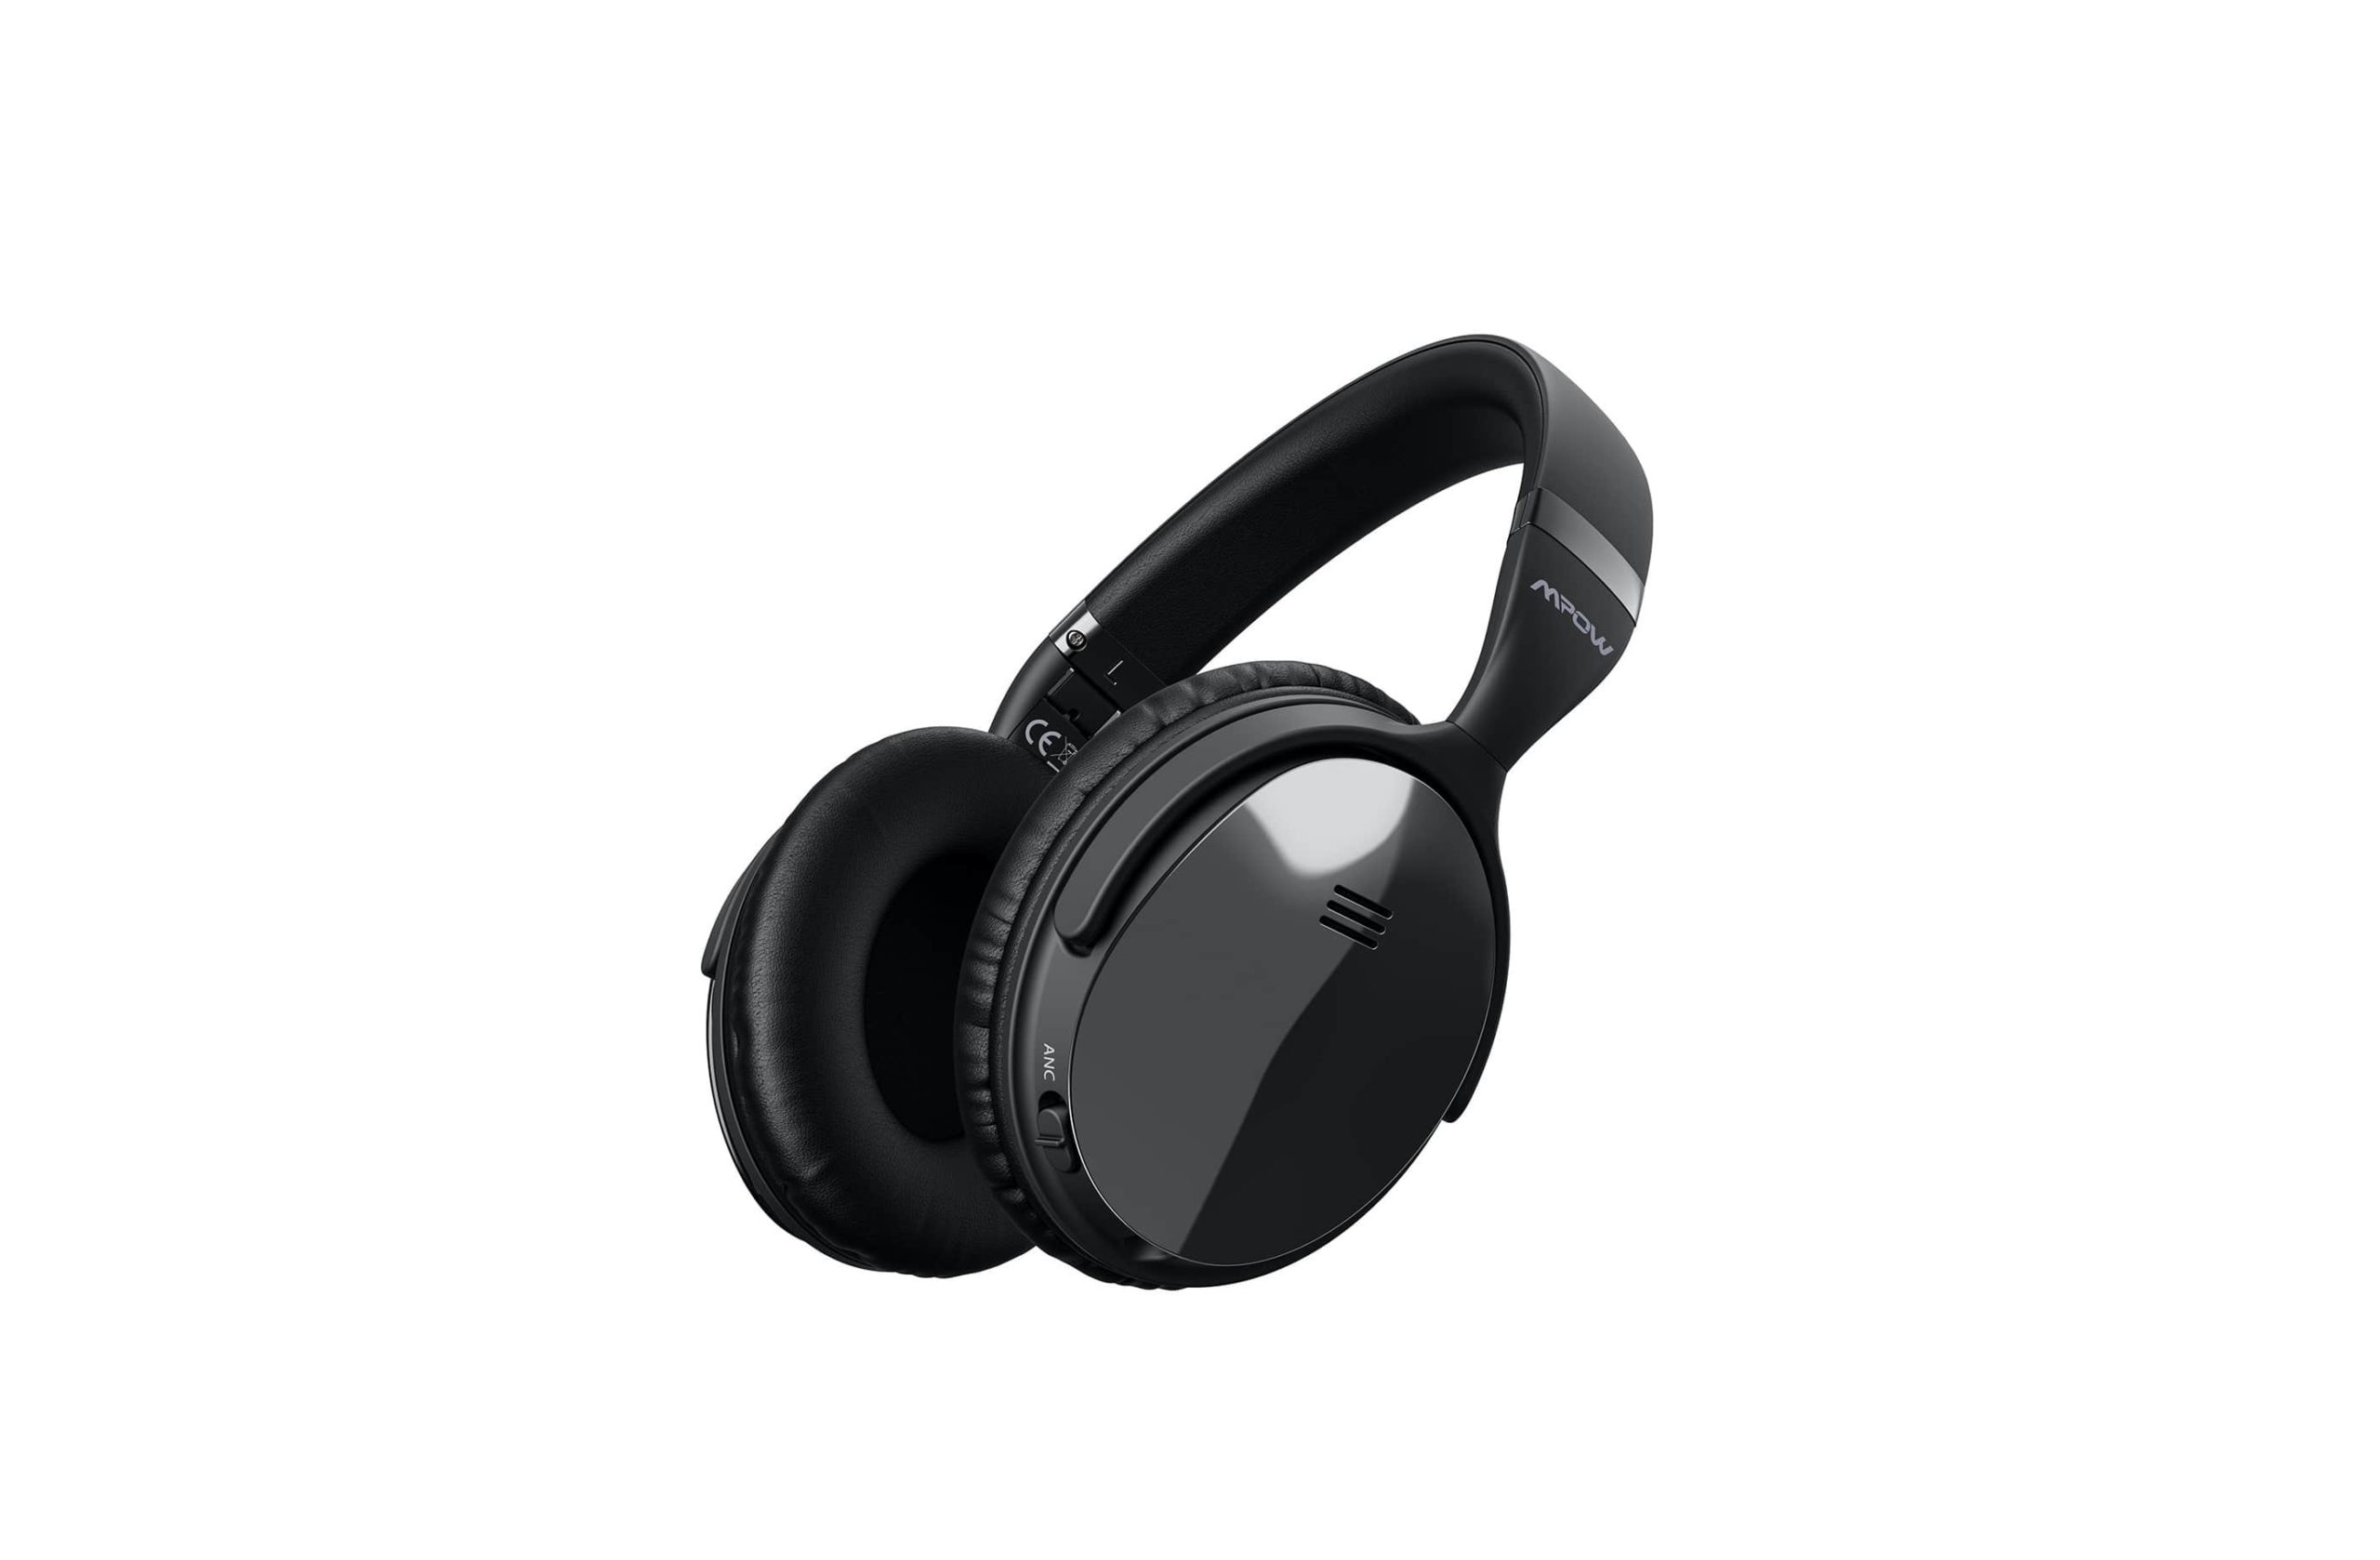 Mpow H5 [Upgrade] Active Noise Cancelling Headphones-min (5)